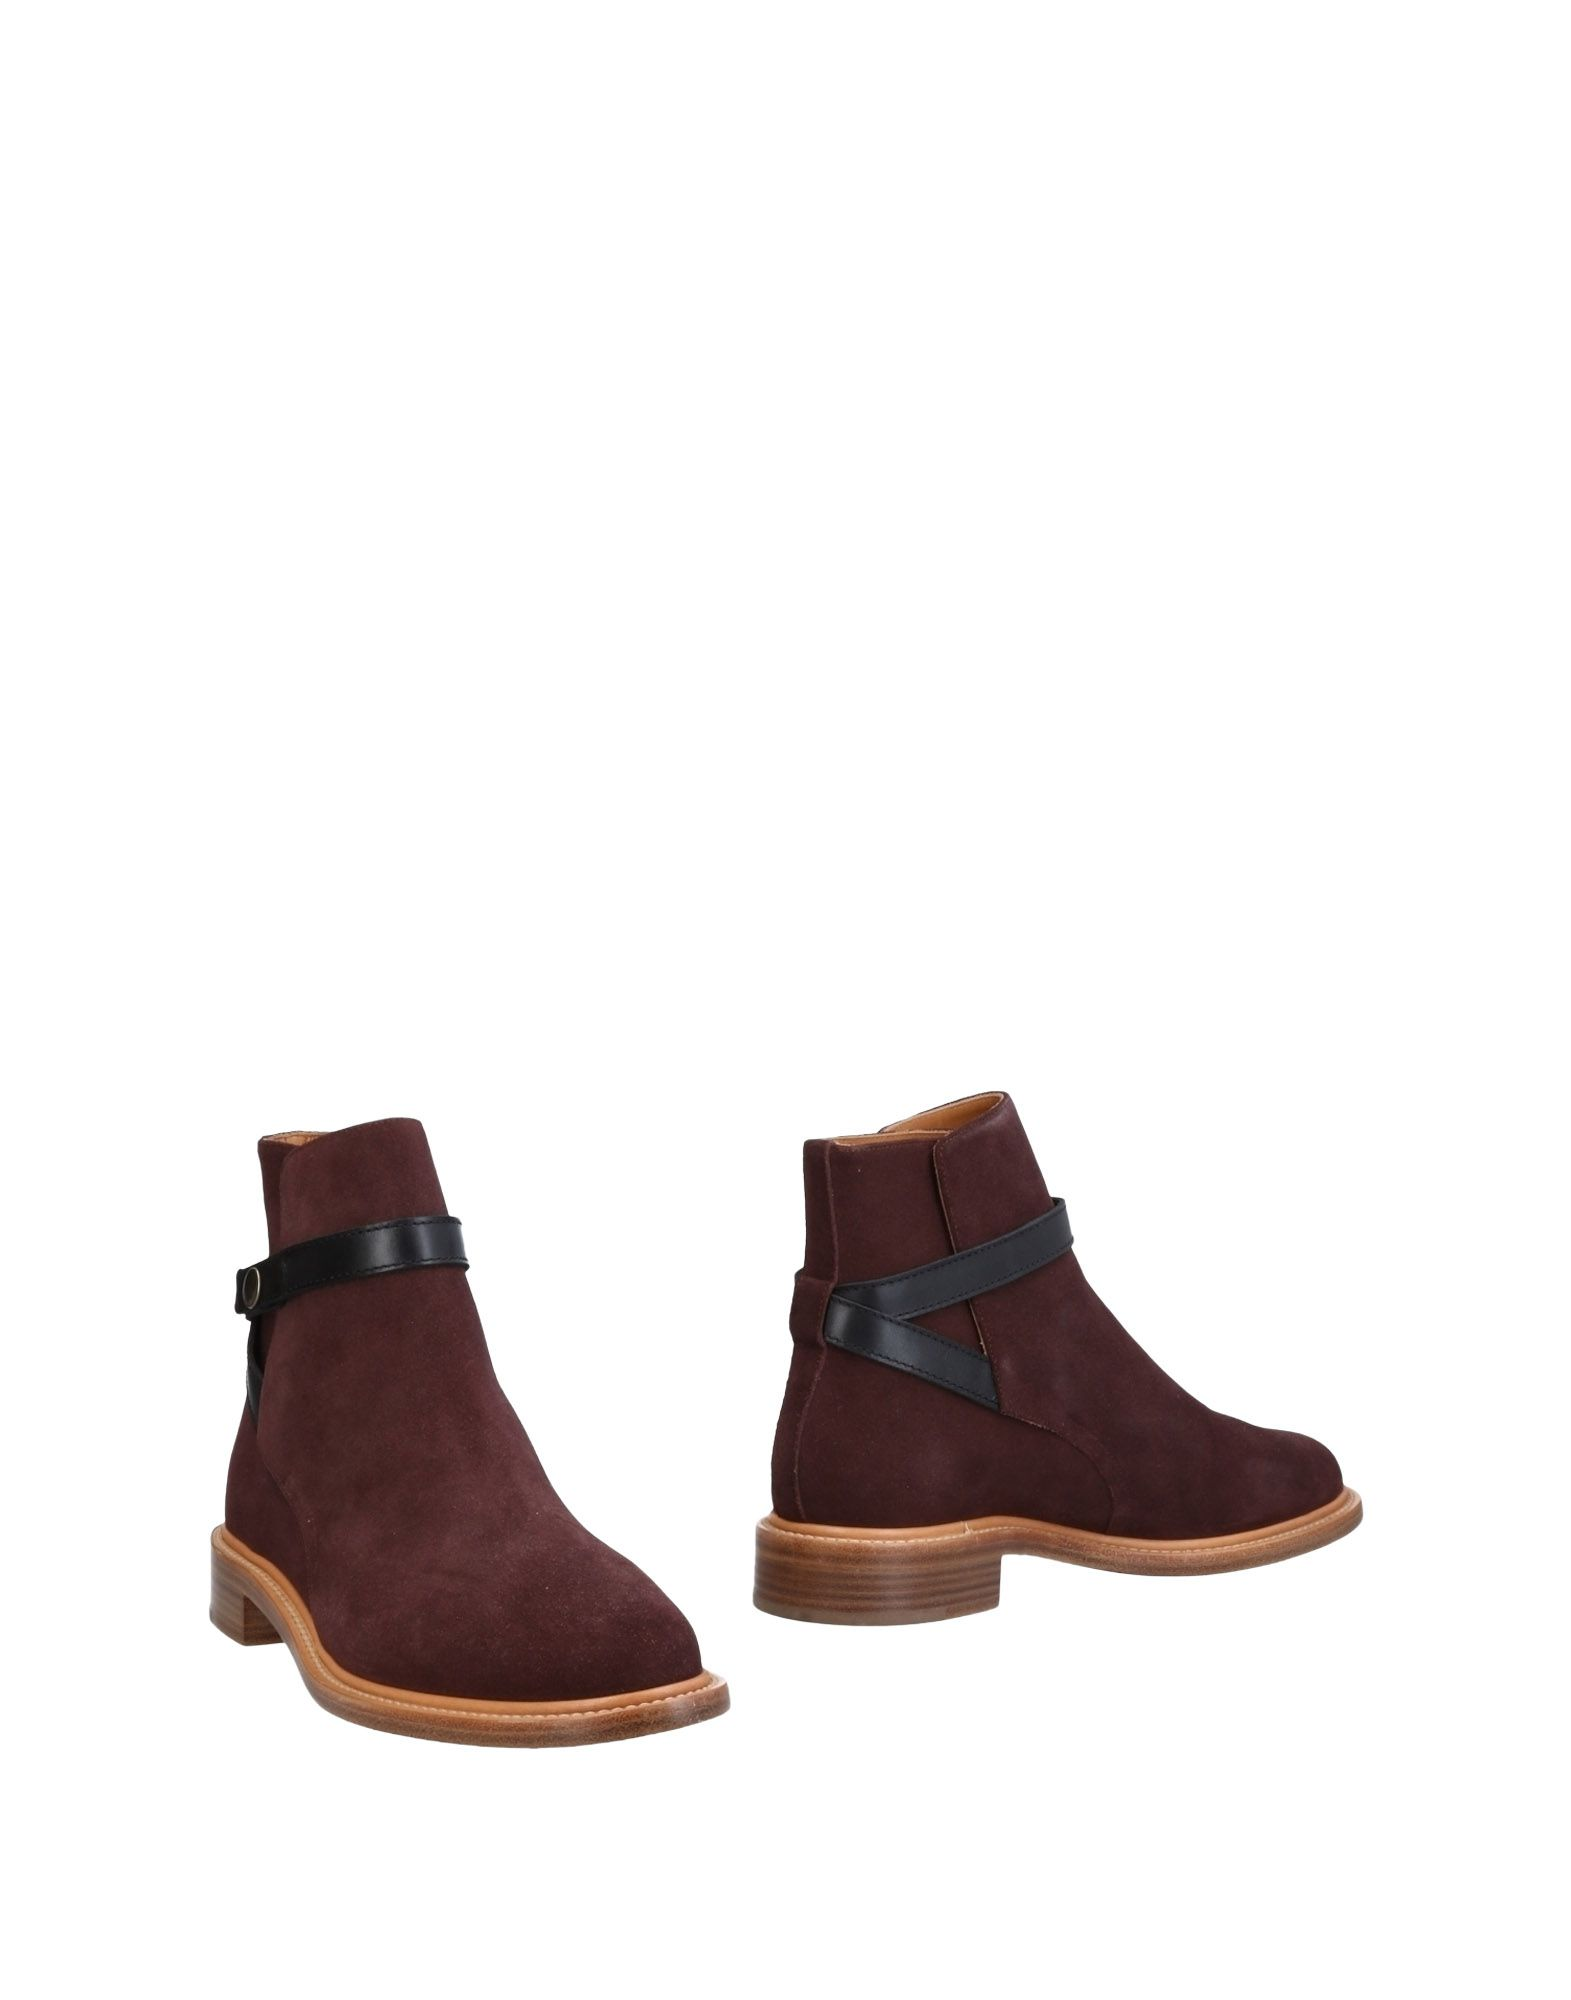 Bottine Chloé Femme - Bottines Chloé Aubergine Super rabais